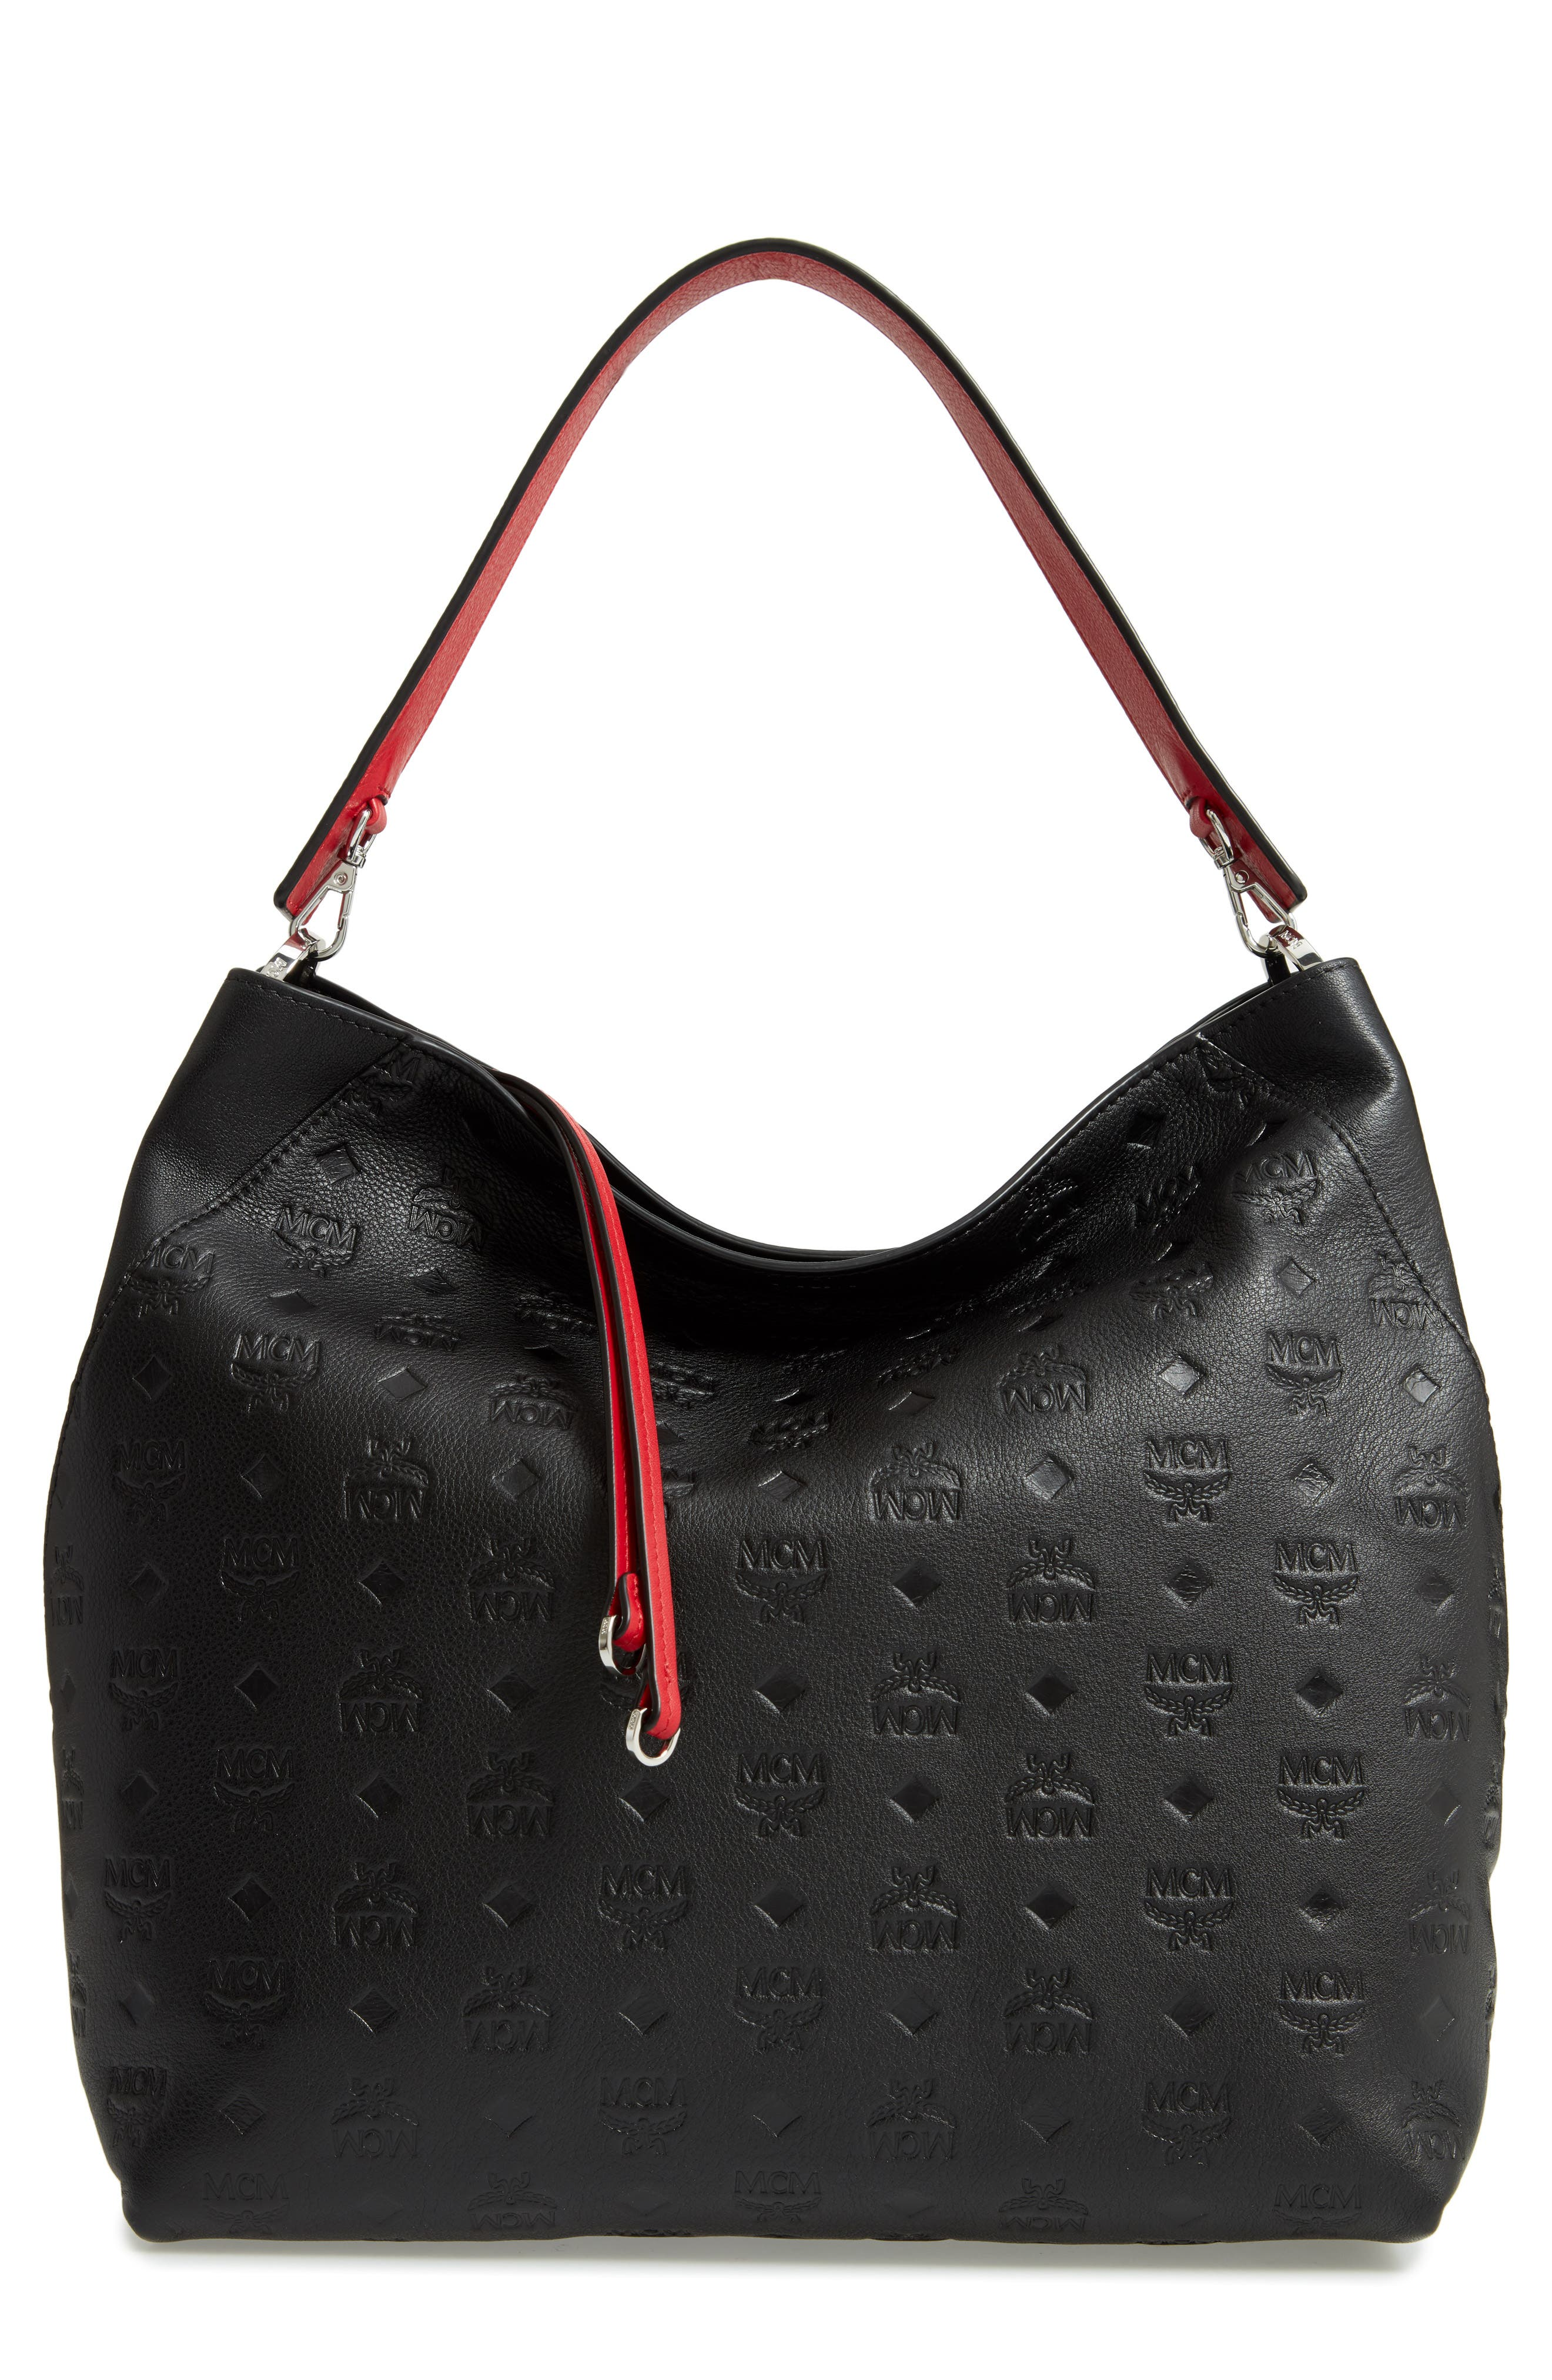 Klara Monogrammed Leather Hobo Bag,                         Main,                         color, 001